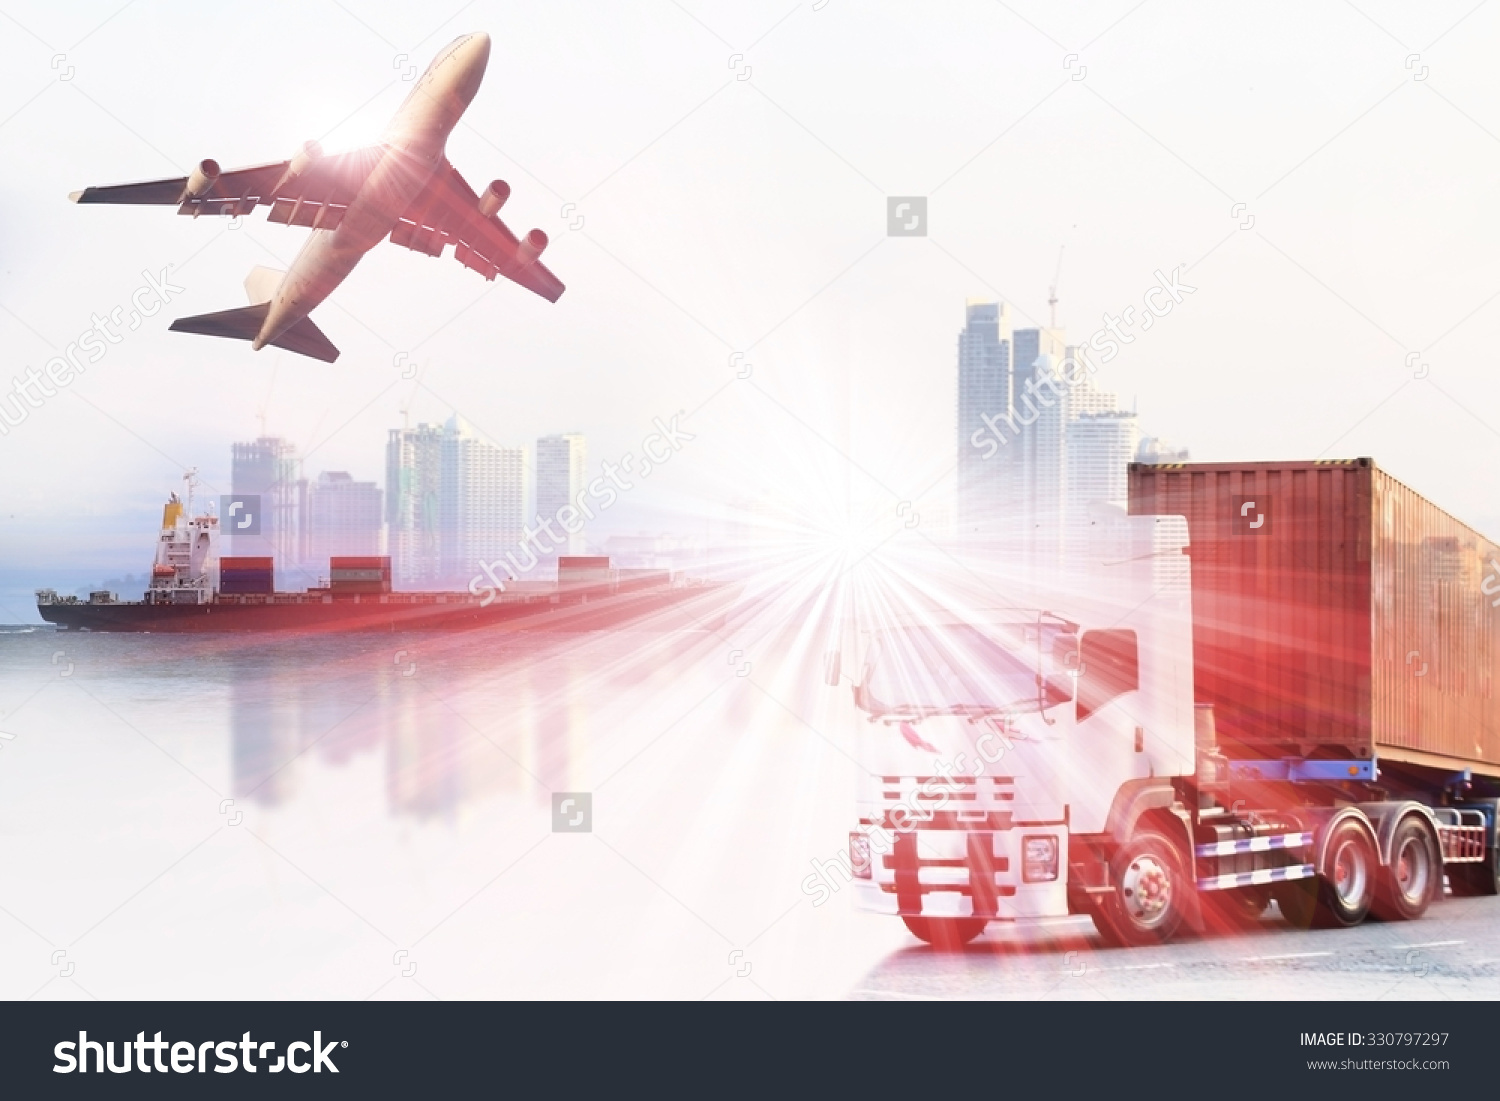 Trucks and plane clipart clipart free Plane truck ship clipart free - ClipartFest clipart free